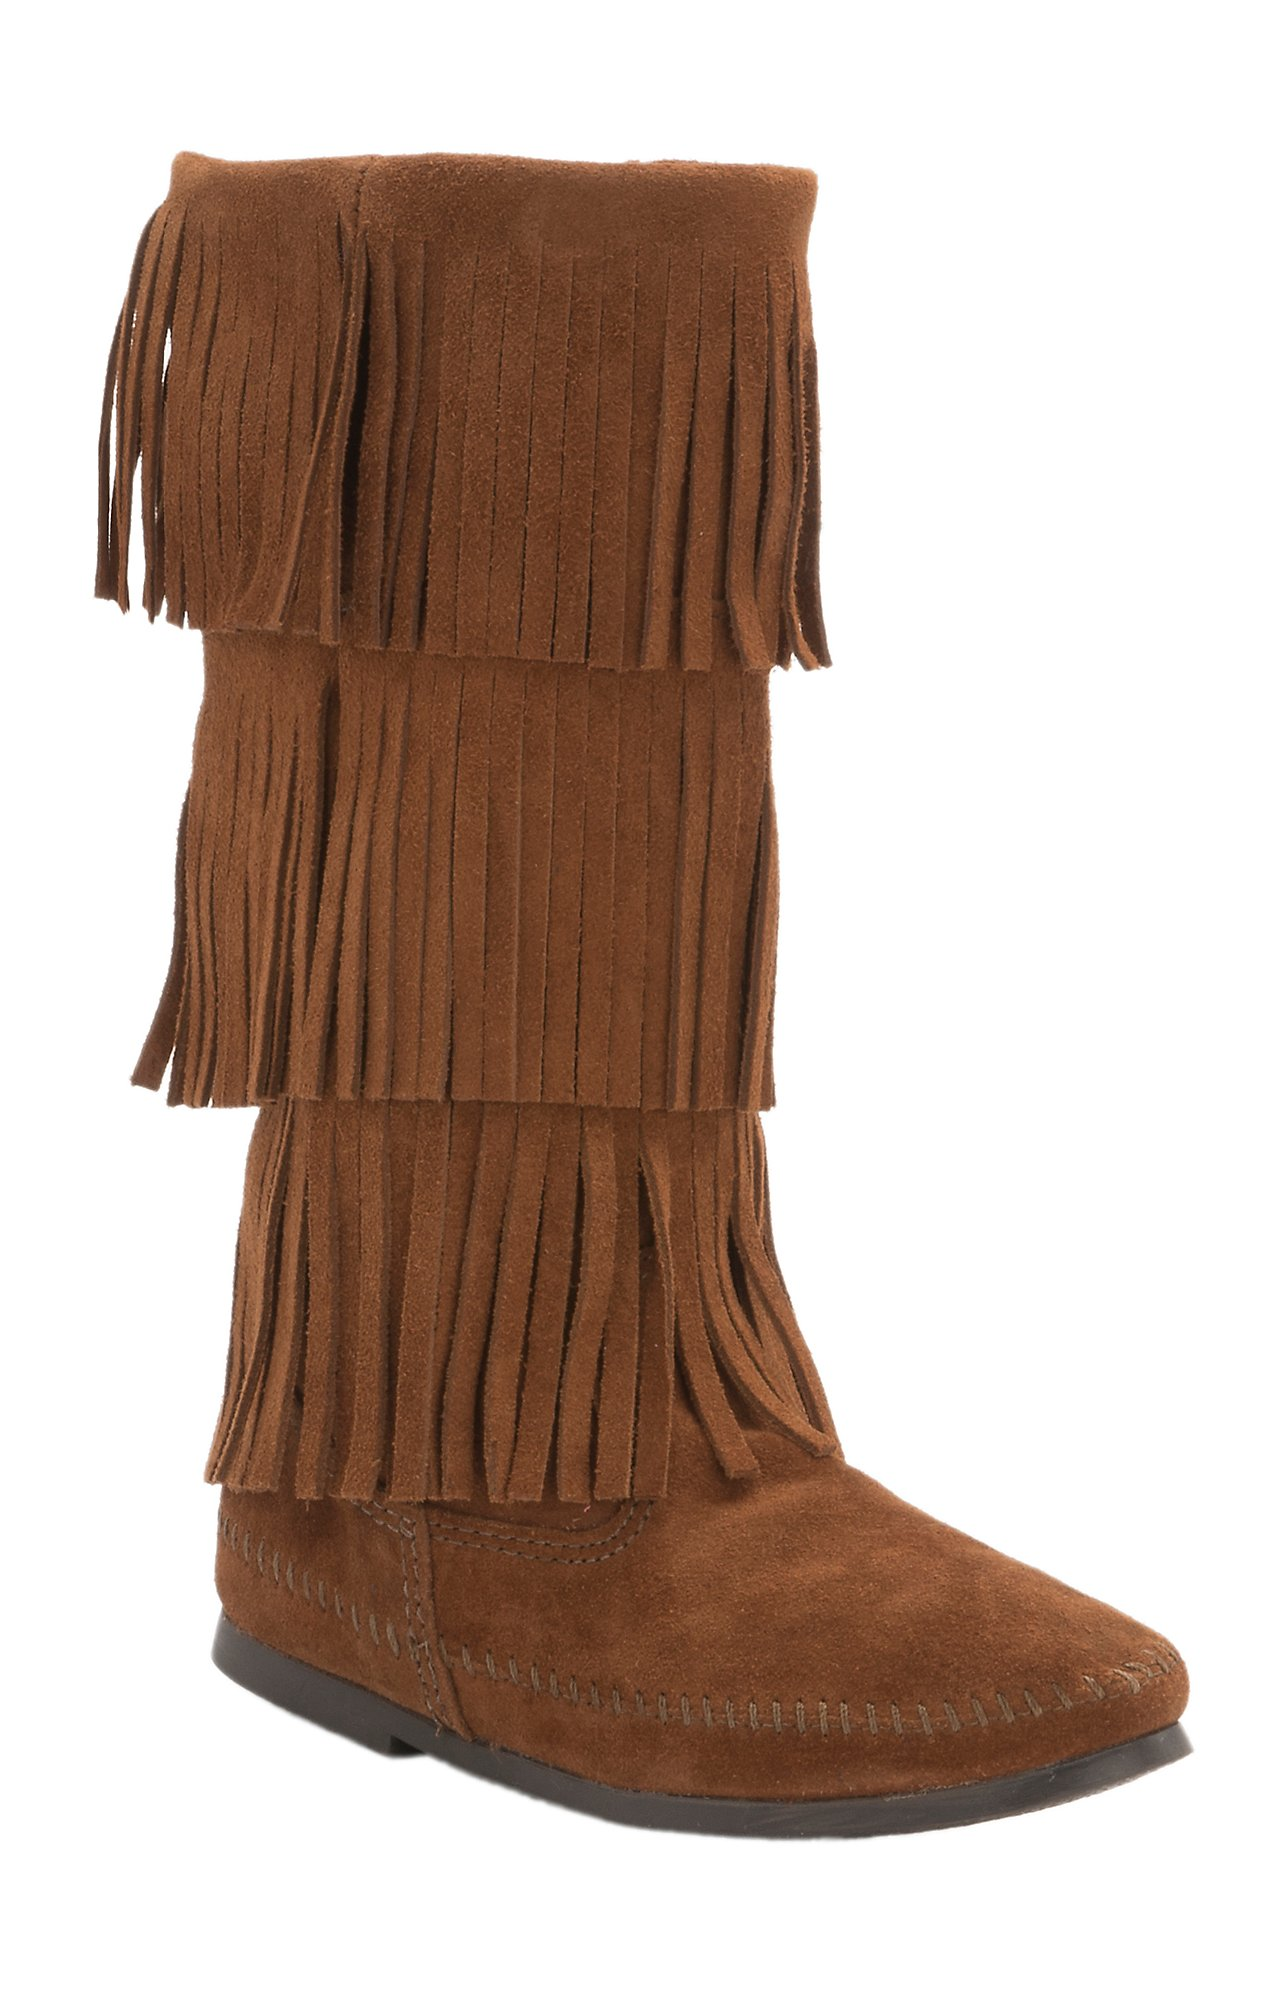 Minnetonka Ladies Rust Brown Suede 3 Layer Fringe Boots | Cavender's